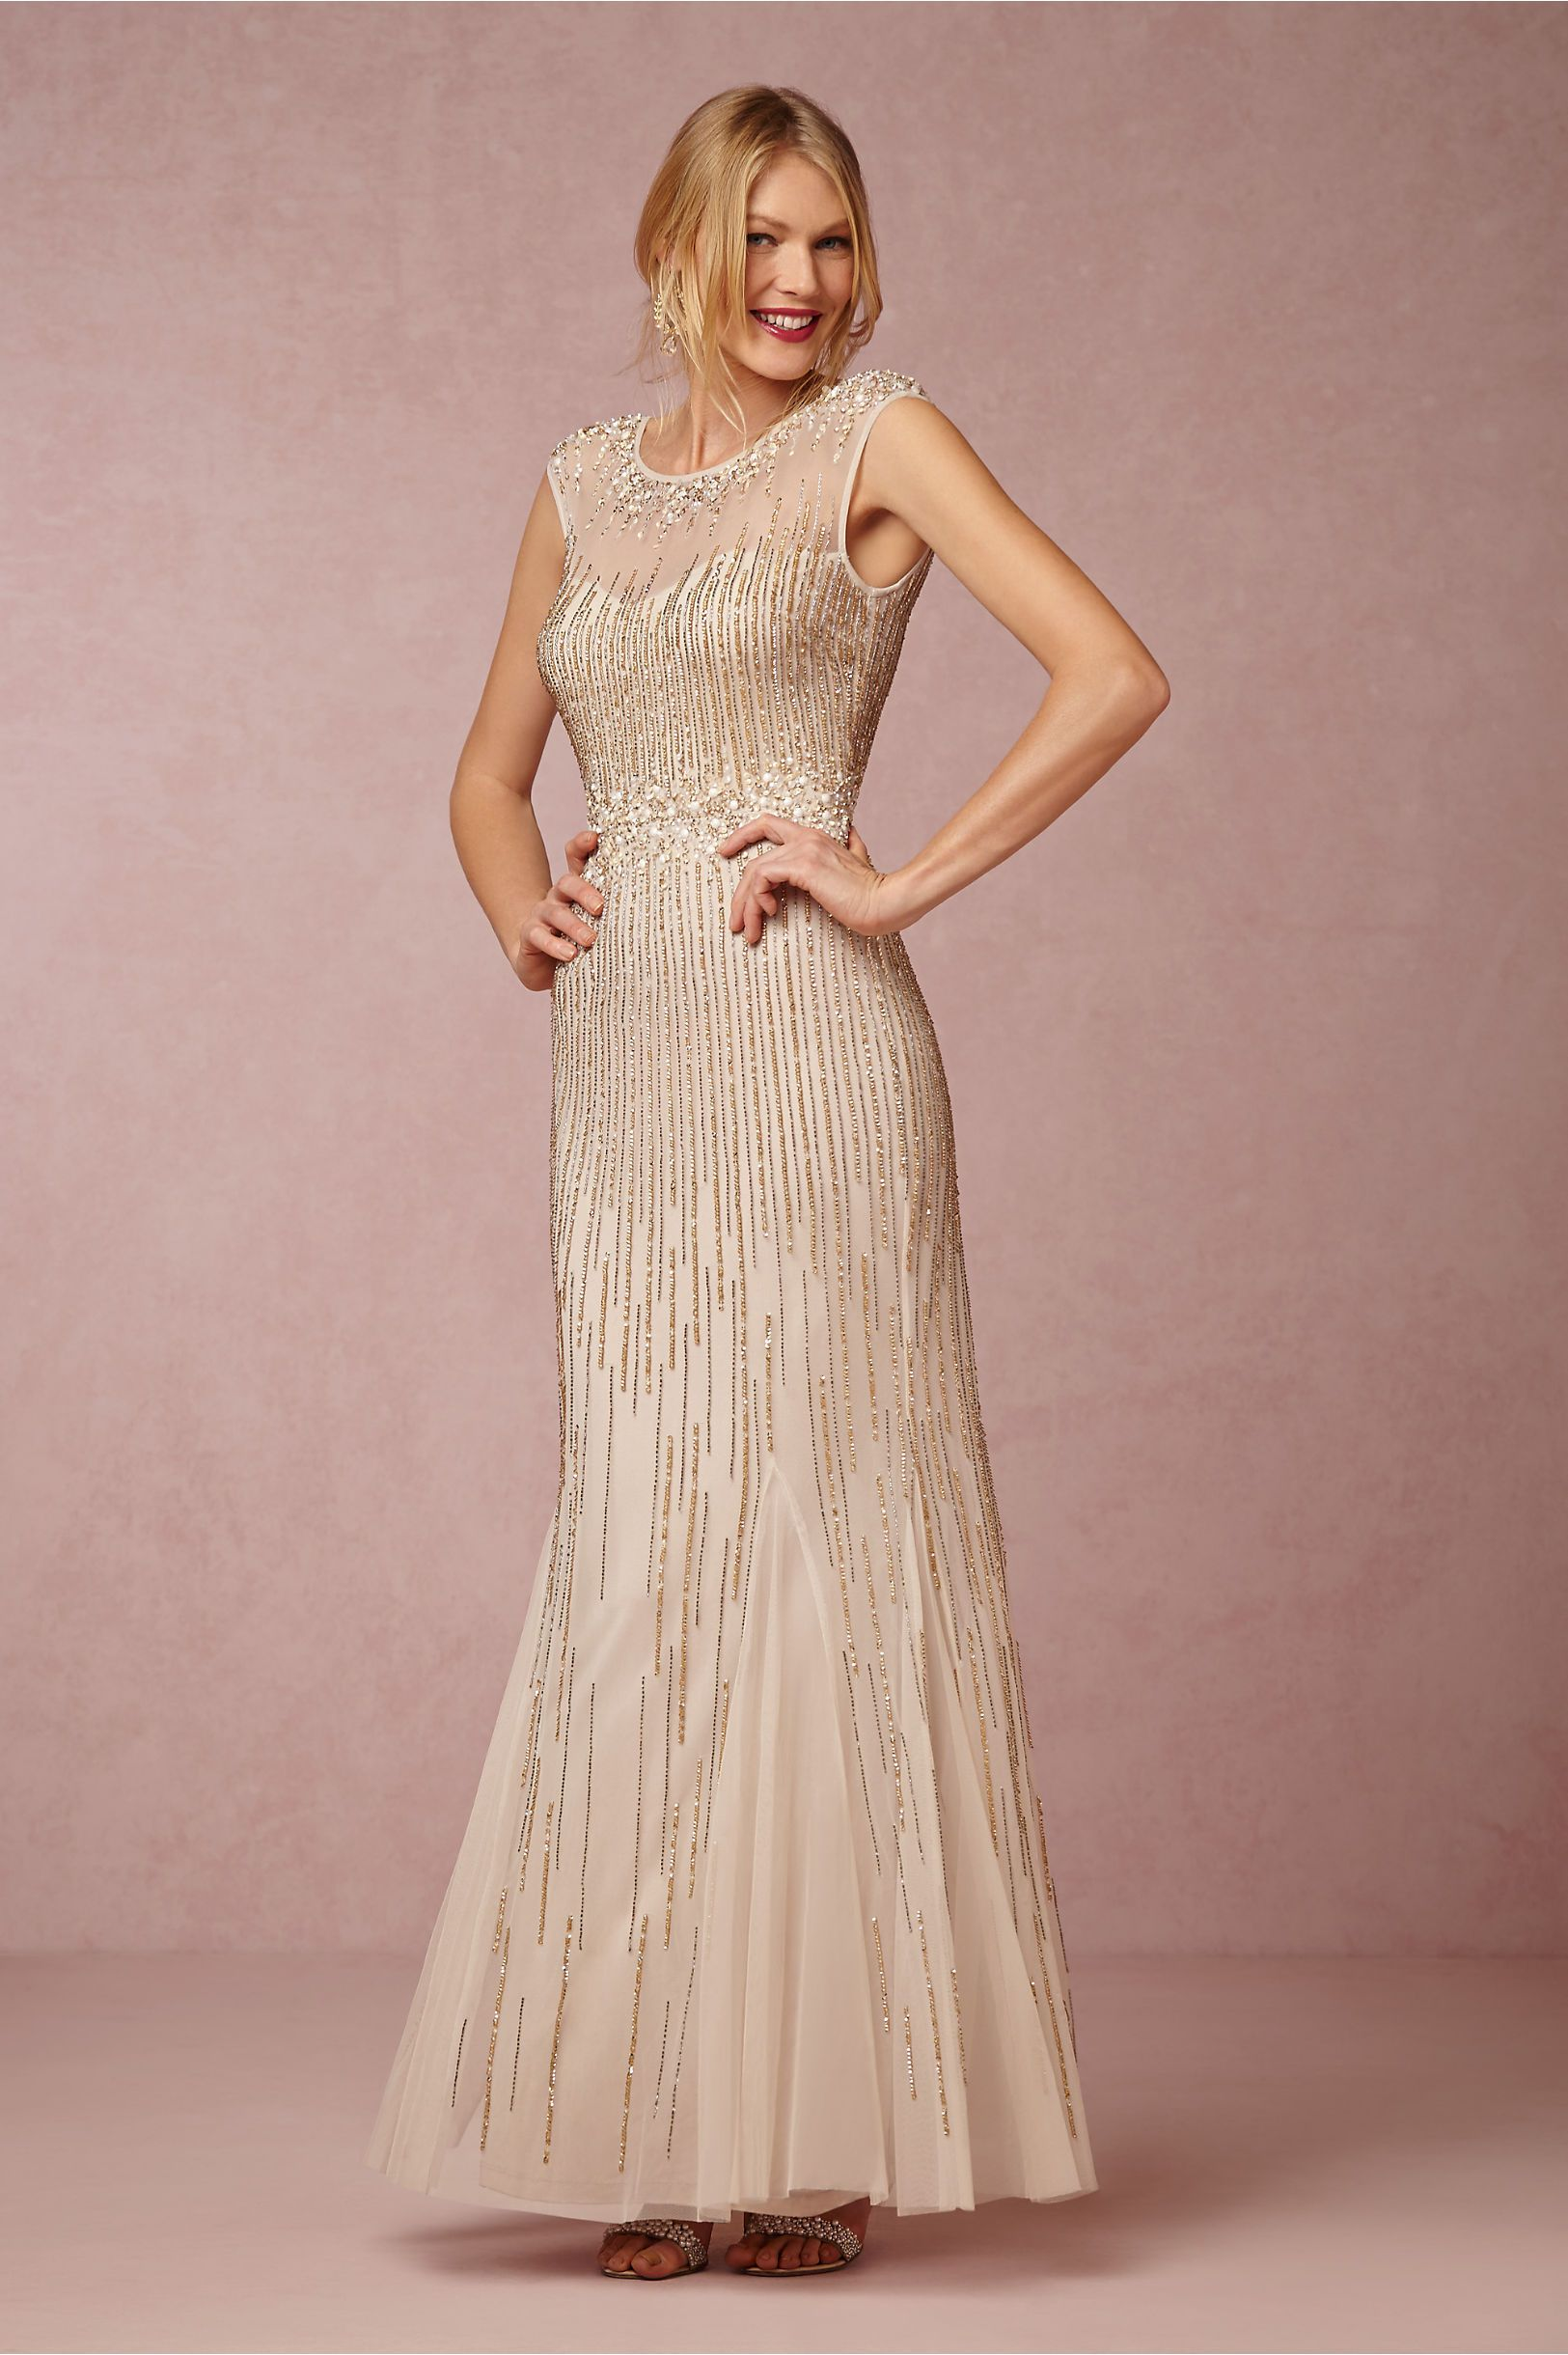 Emeline Dress from @BHLDN | Mother of the Groom fashions | Pinterest